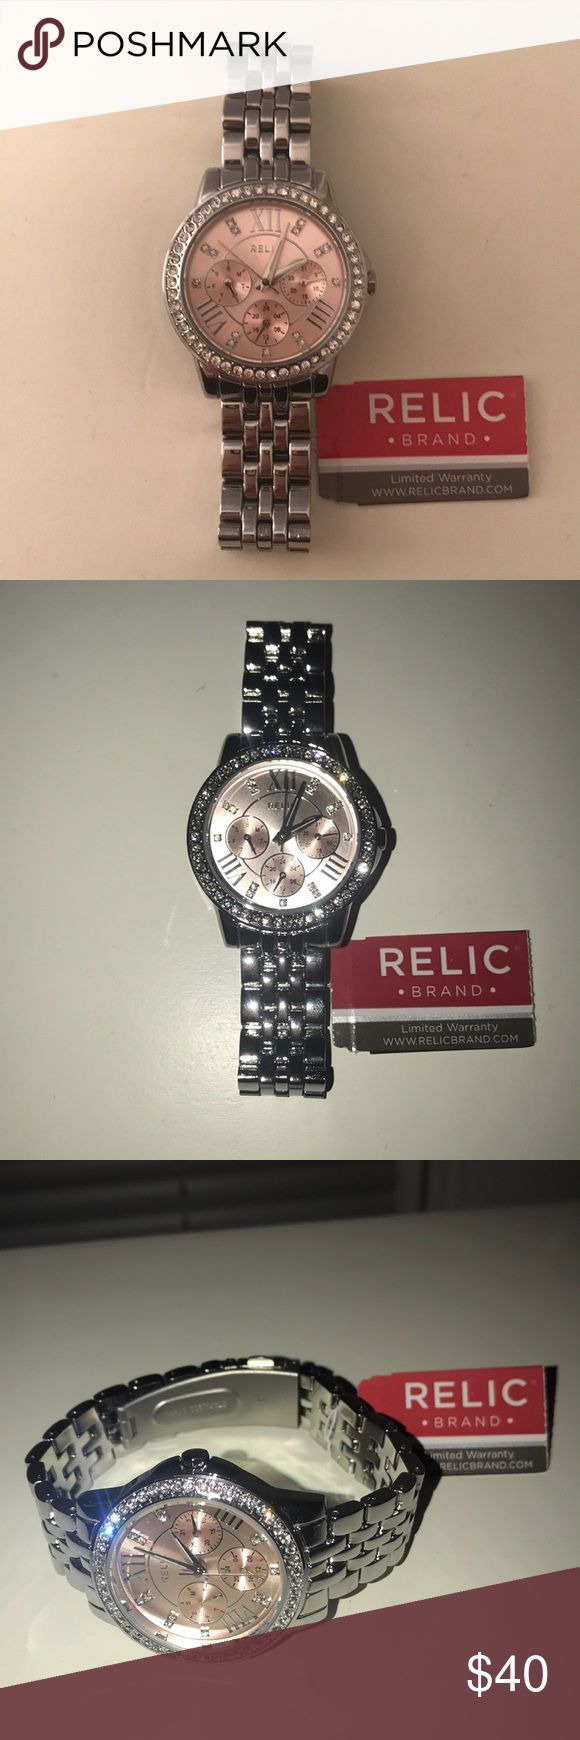 Relic Watch New, Never Worn, Relic Brand Watch, Limited Warranty, Silver, Light Pink, and Diamonds Relic Accessories Watches